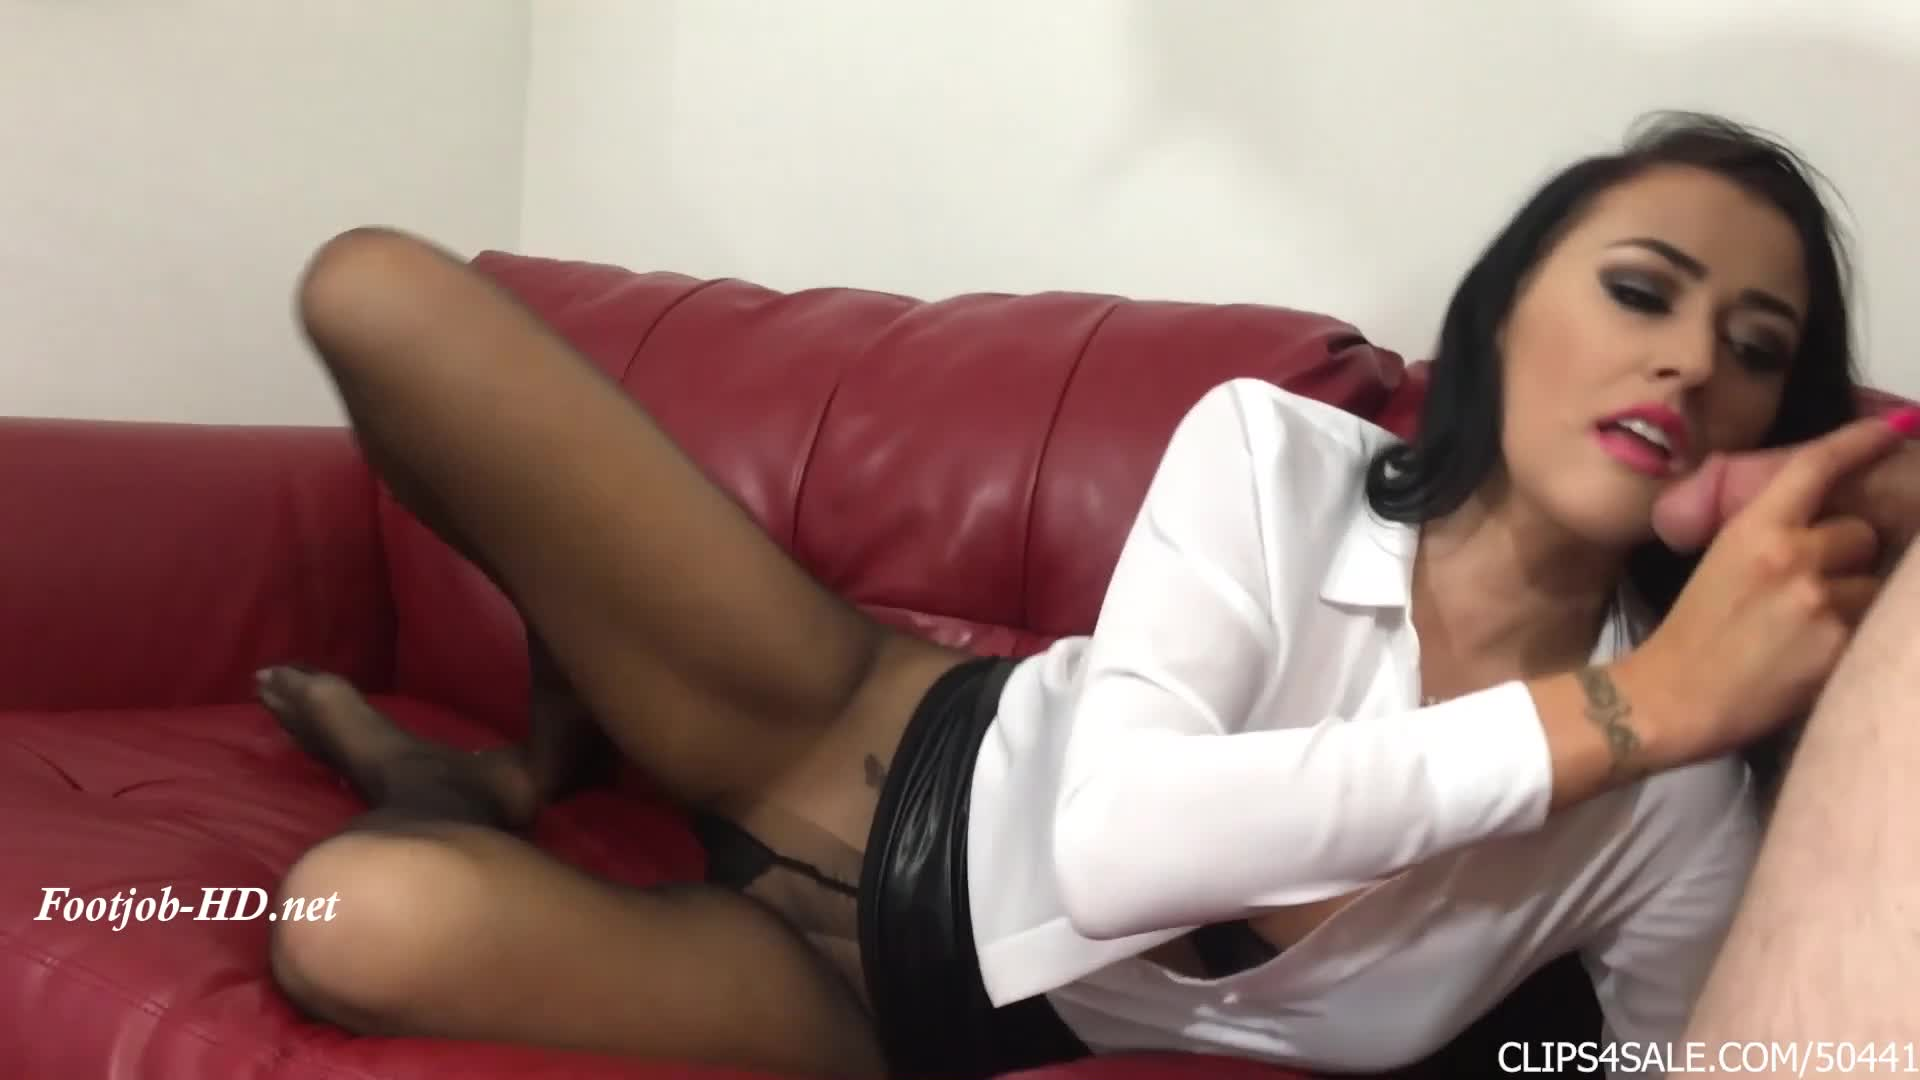 Watch wife give blowjob